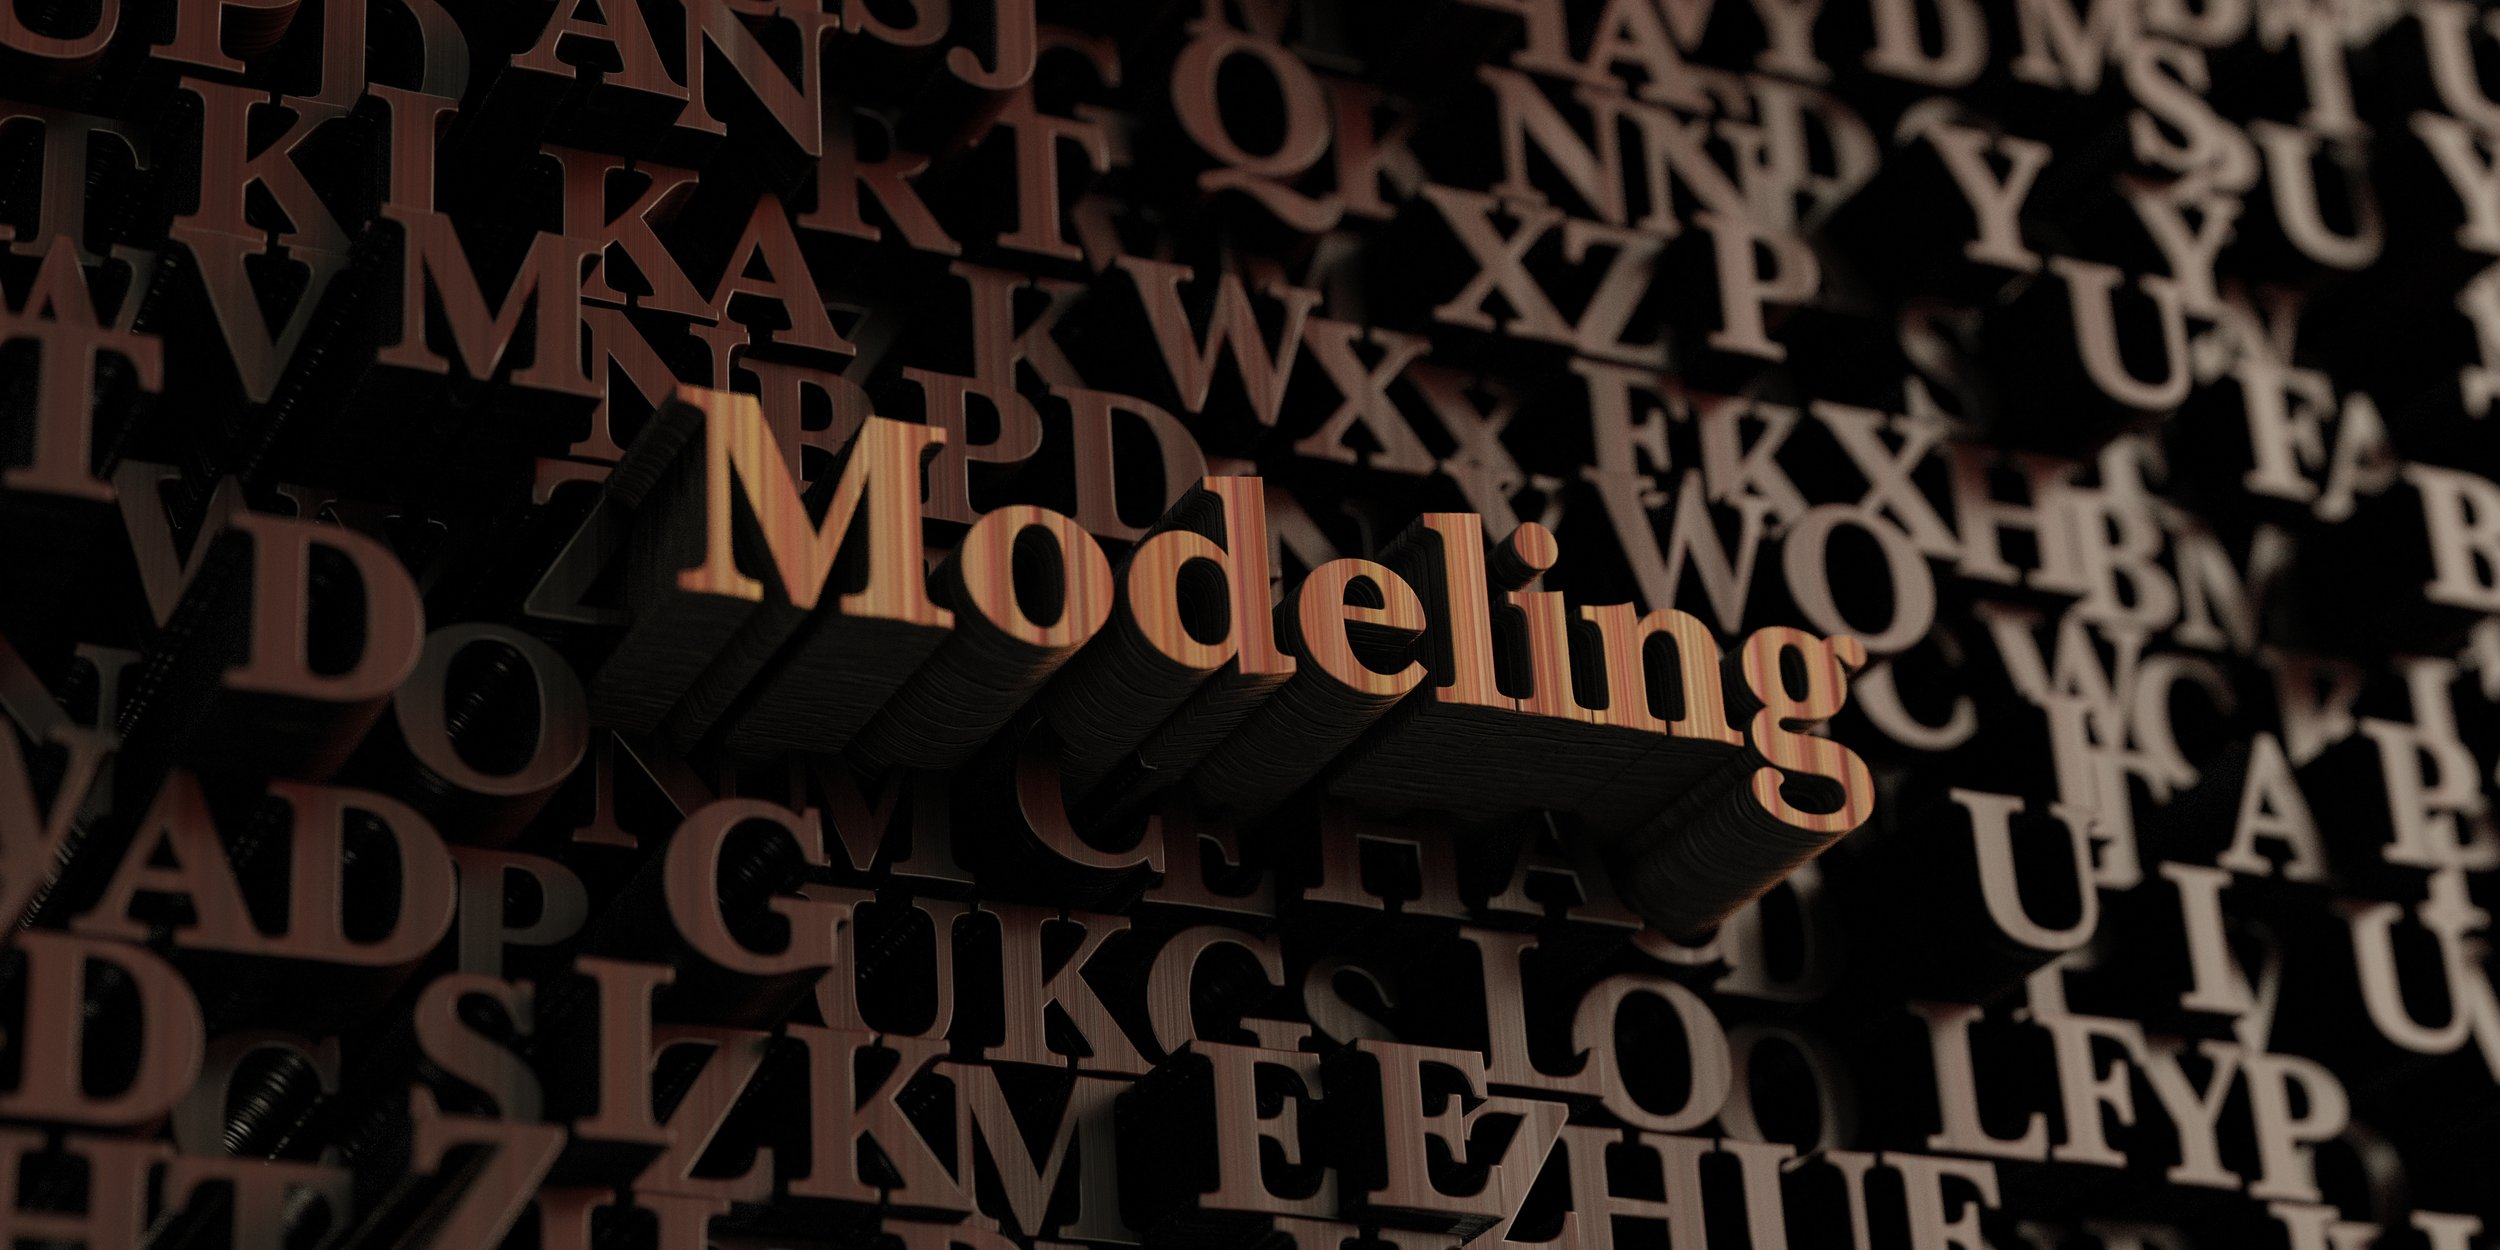 Modeling - Wooden 3D rendered letters/message.  Can be used for an online banner ad or a print postcard.